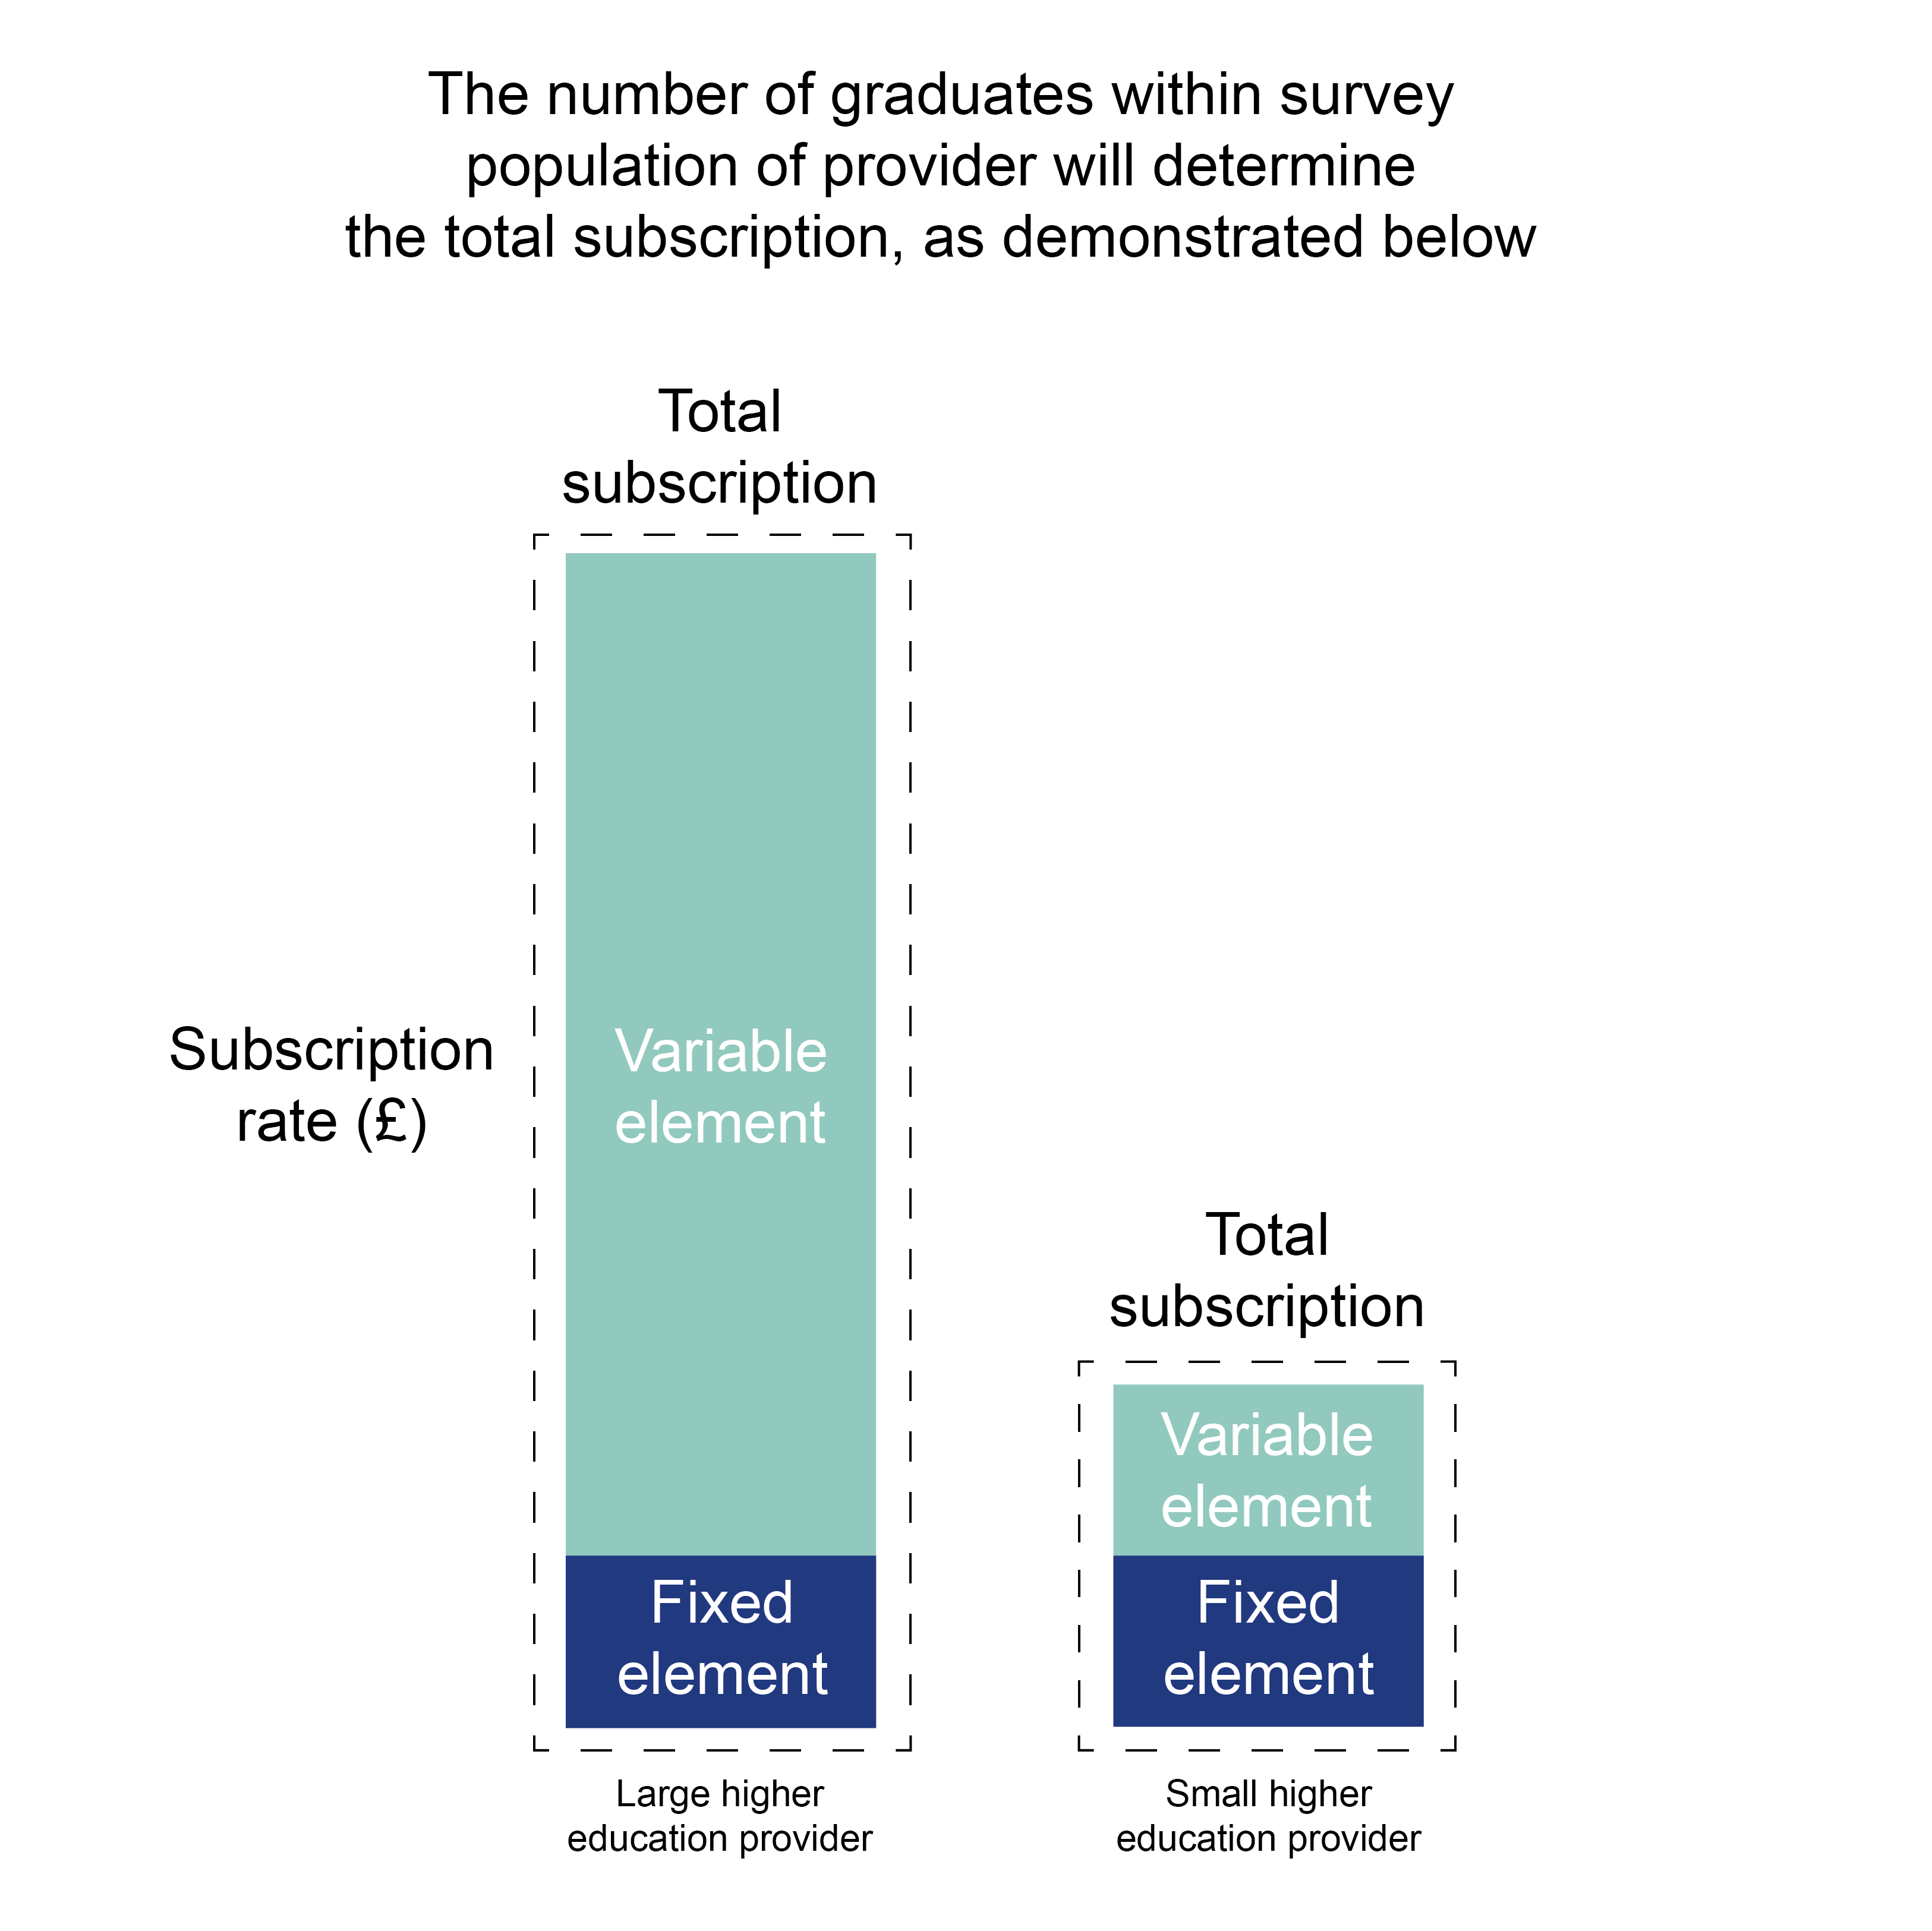 A chart demonstrating the Graduate Outcomes subscription rates showing how the number of graduates within the survey population of a provider will determine the total subscription.